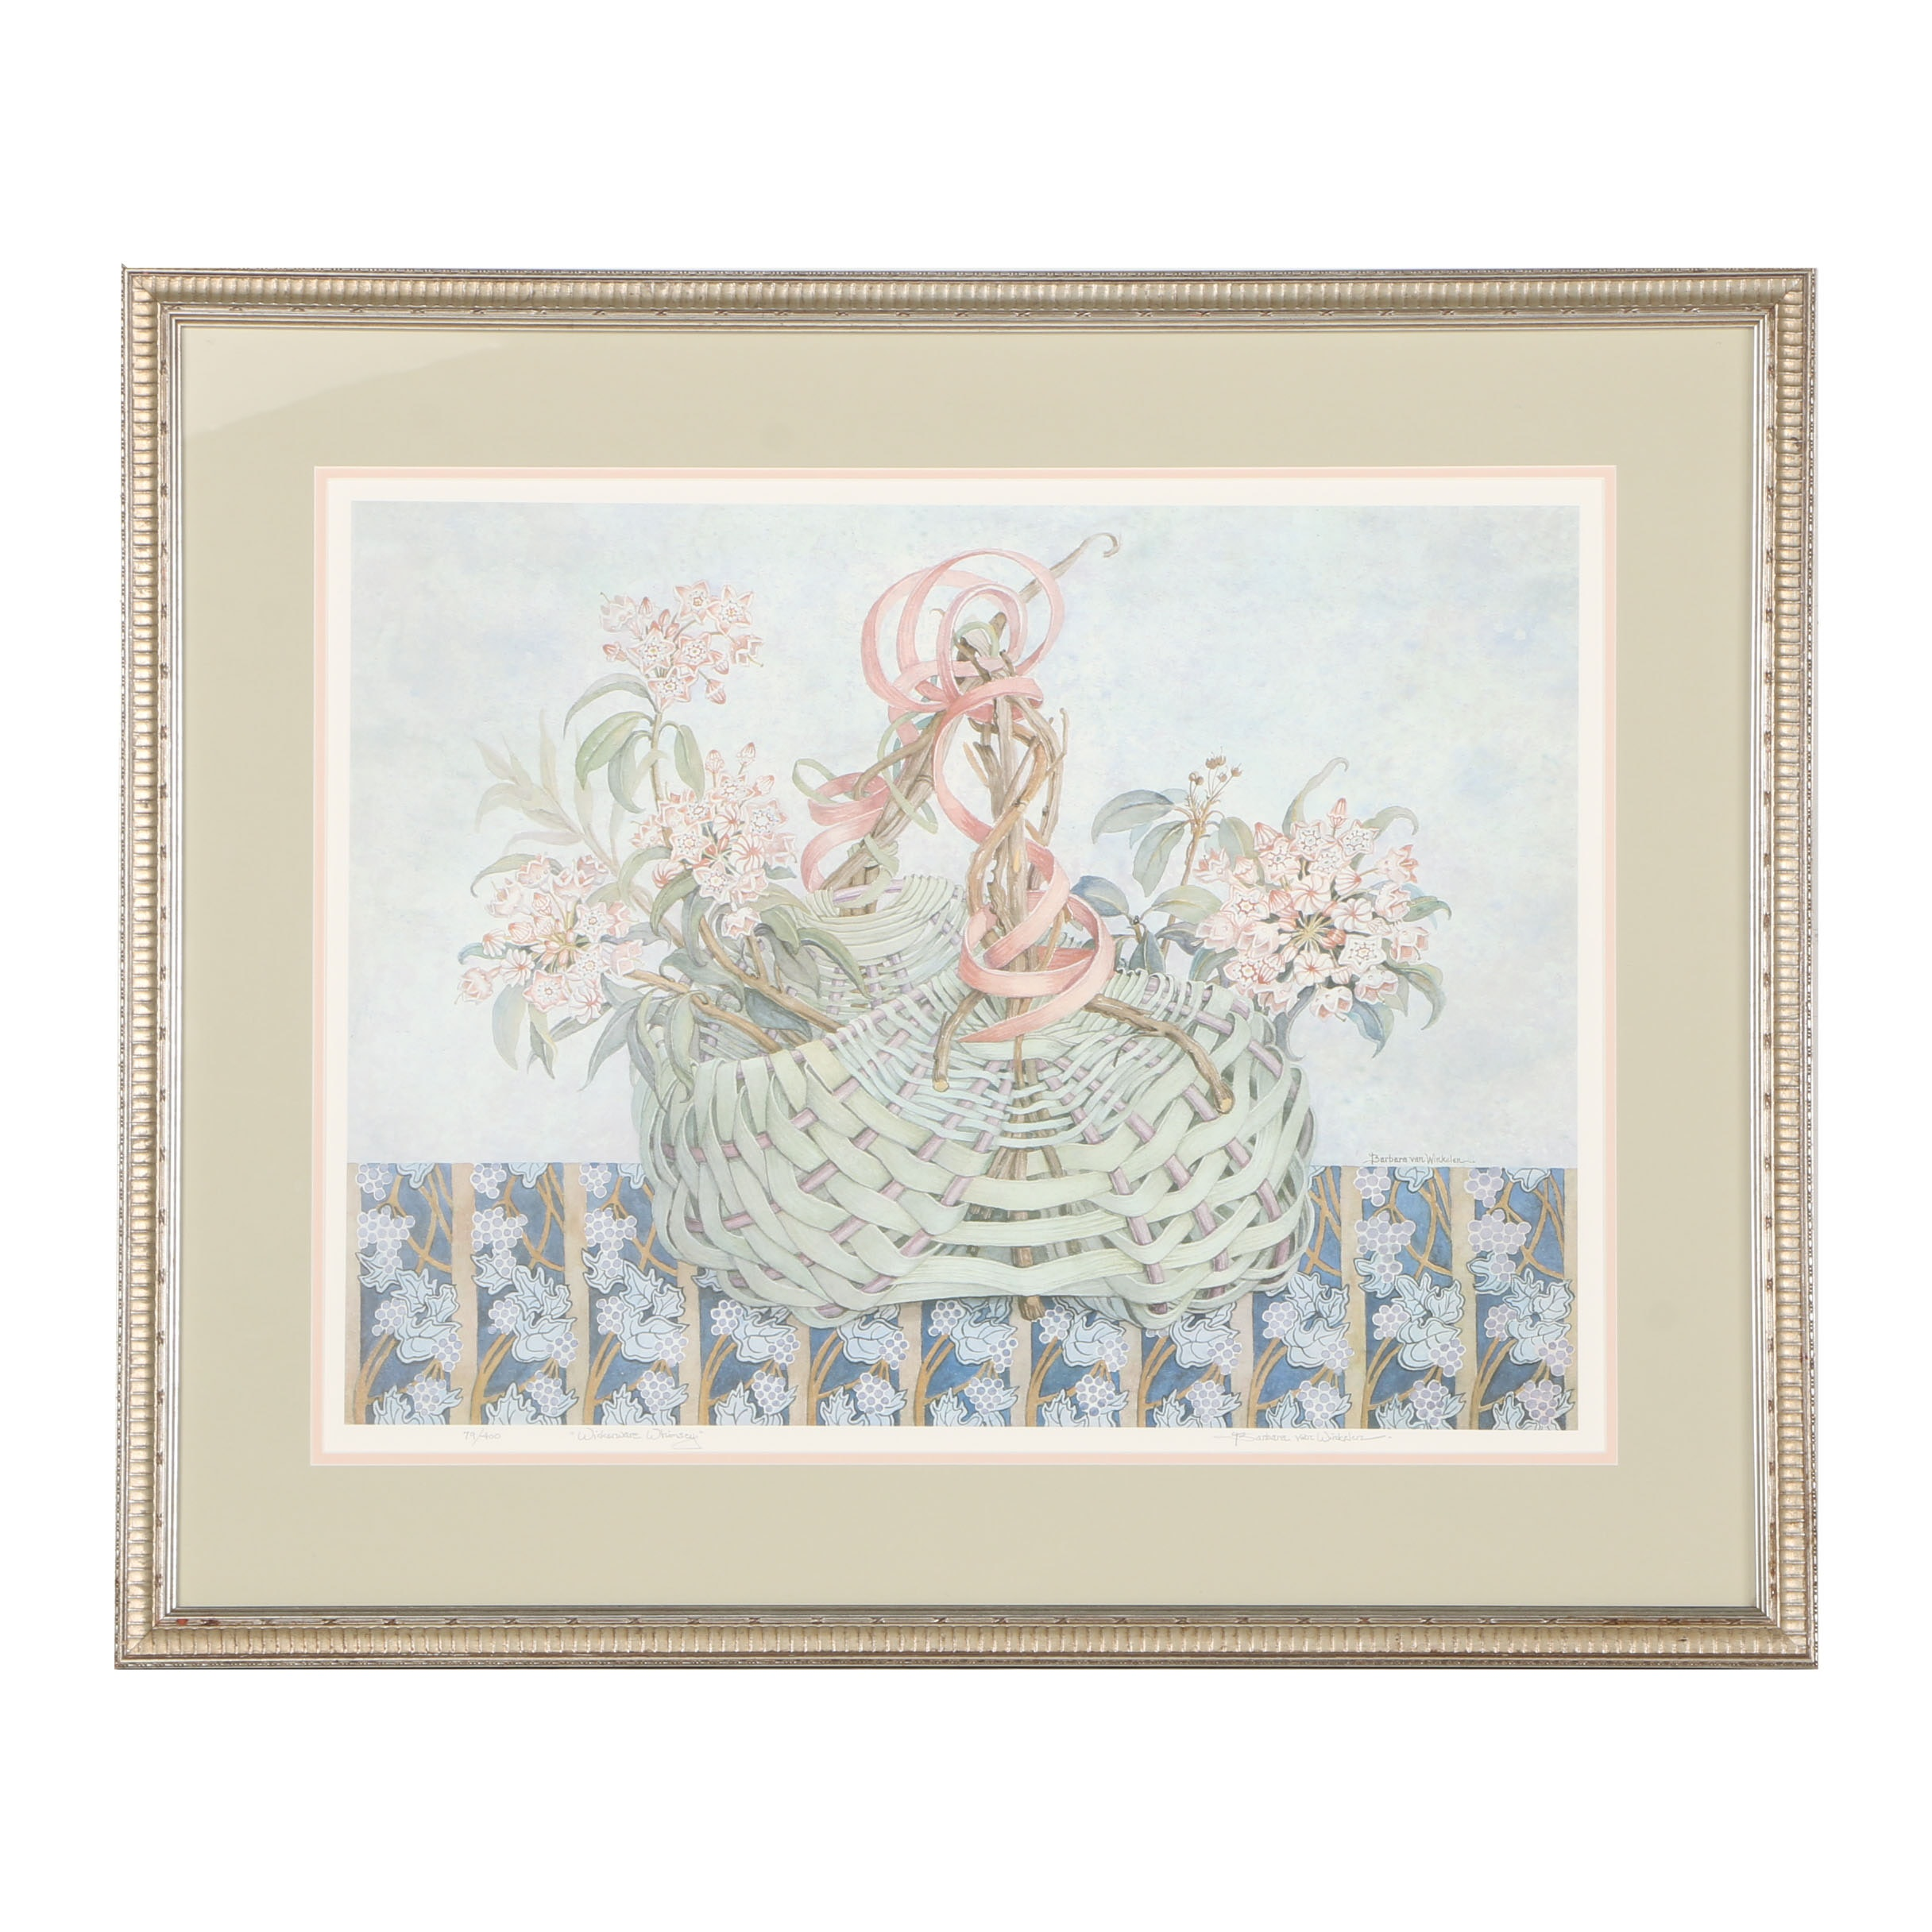 "Barbara Van Winkelen Limited Edition Offset Lithograph ""Wickerware Whimsey"""